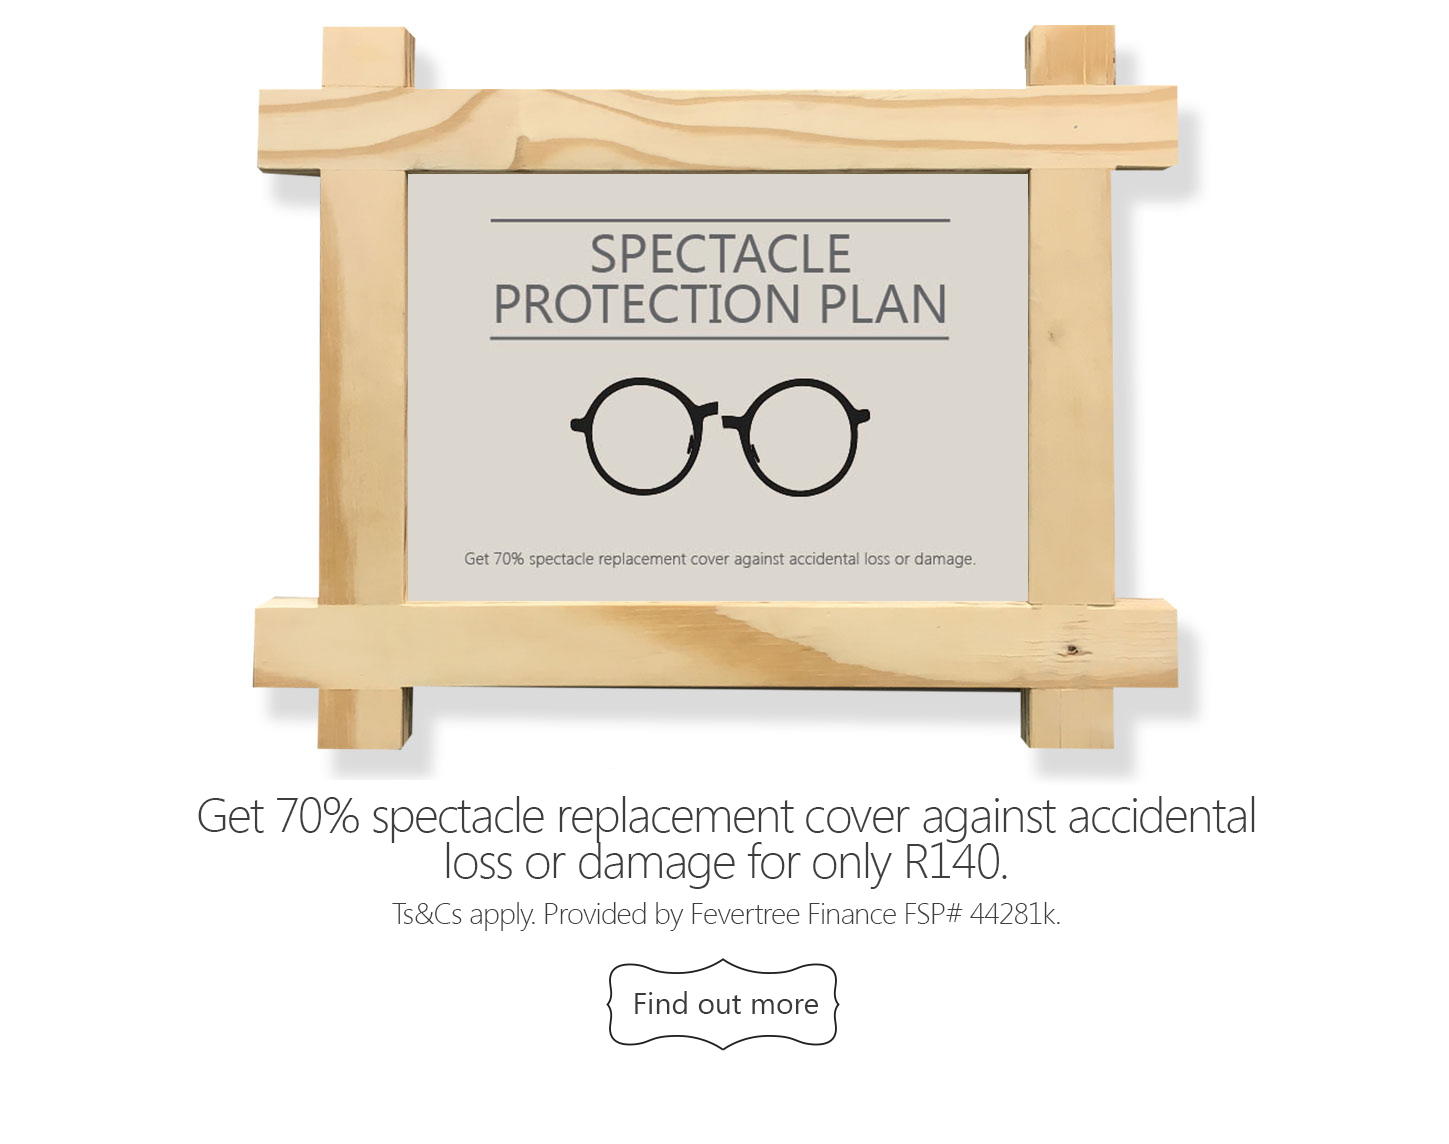 Spectacle Protection Plan